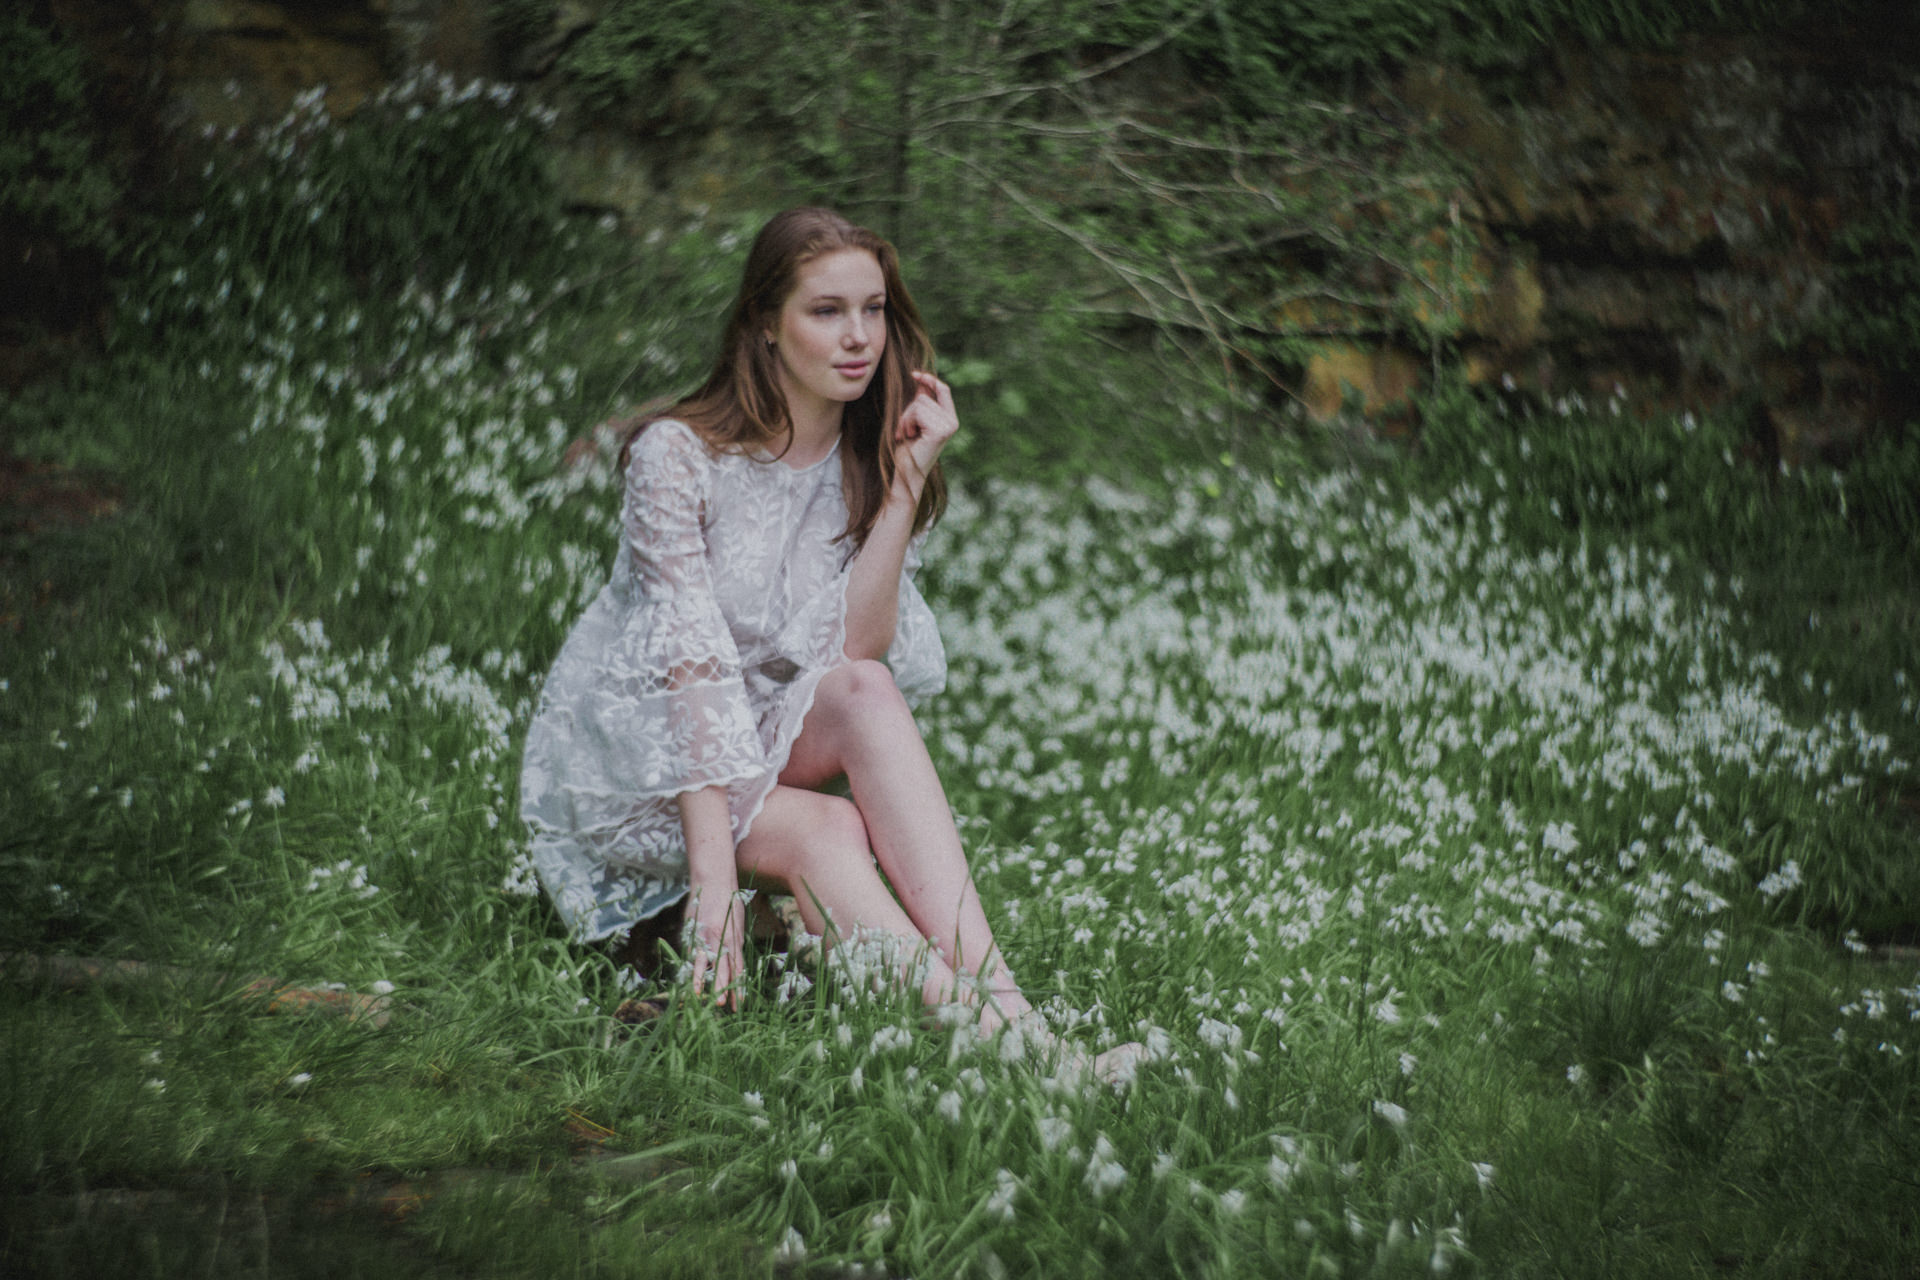 Creating An Effective Outdoor Photoshoot